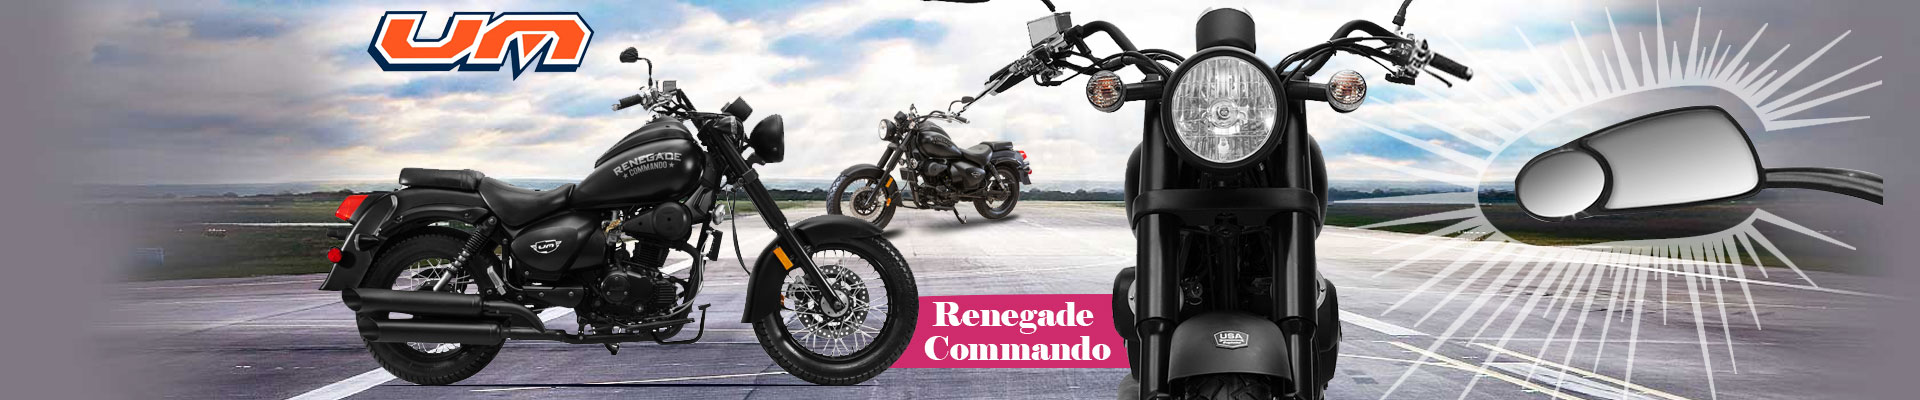 Renegade Commando